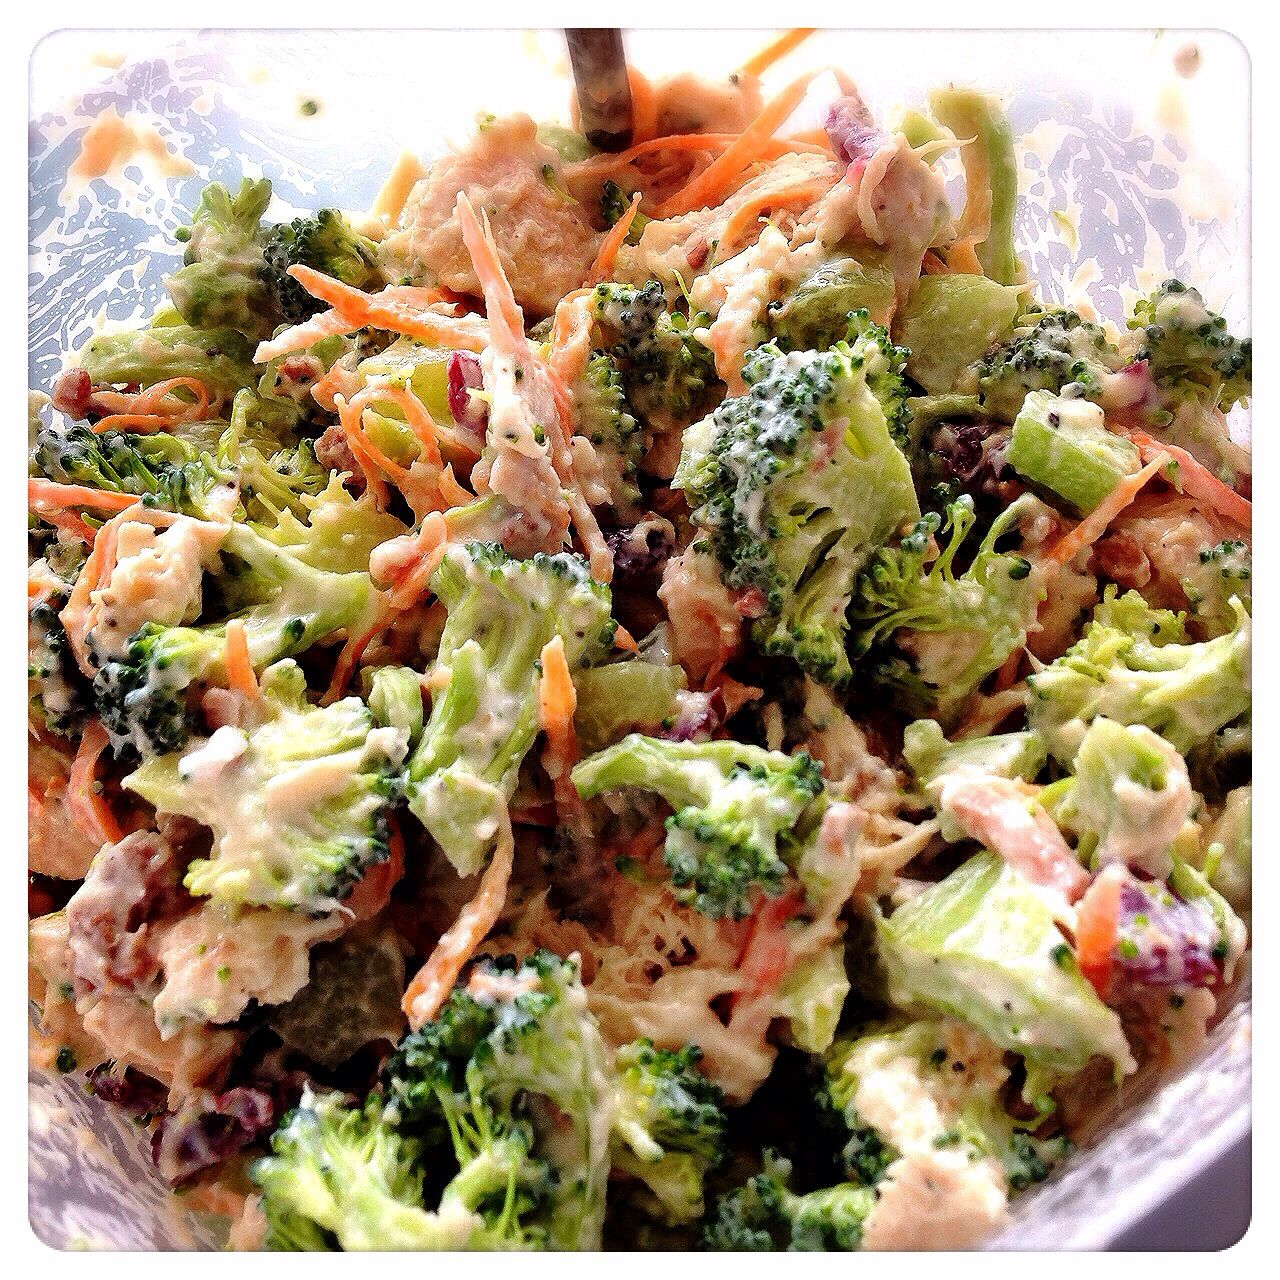 Wanted to pre-make something for the week that is fulfilling & healthyish so I made this: Chicken broccoli salad! Rotisserie chicken, broccoli, carrots, dried cranberries, celery, grapes, ground mustard, Greek yogurt, apple cider vinegar, grape seed oil, sugar, & pepper.